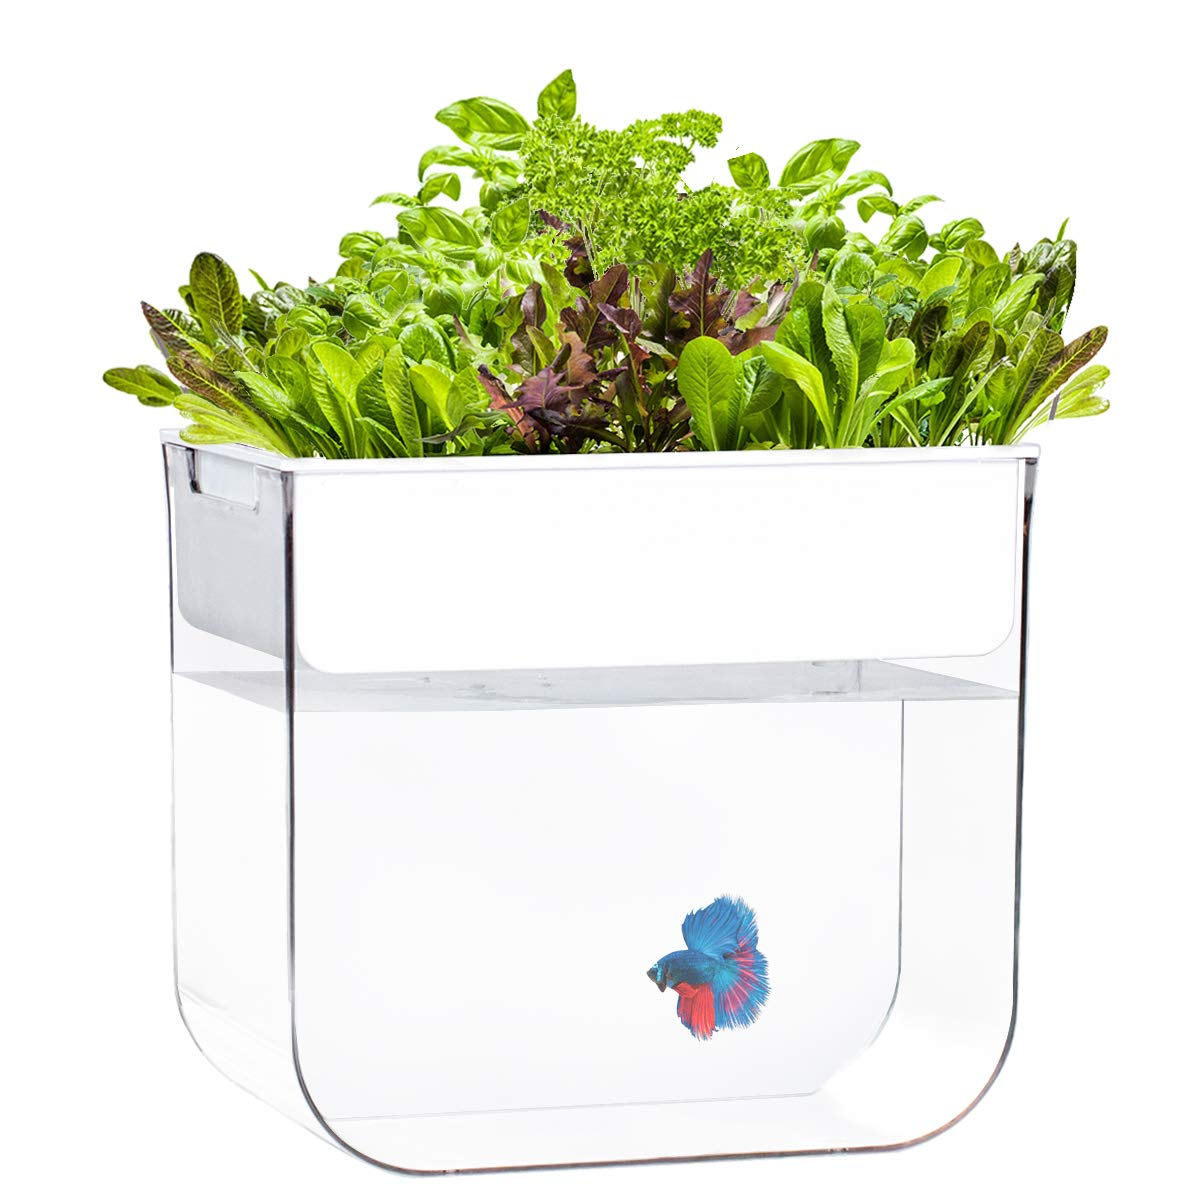 Joyfay Aquaponic Fish Tank- Betta Fish Tank, 3.2 Gallon, Hydroponic Cleaning Tank, Fish Feeds The Plants and The Plants Clean The Tank by Joyfay